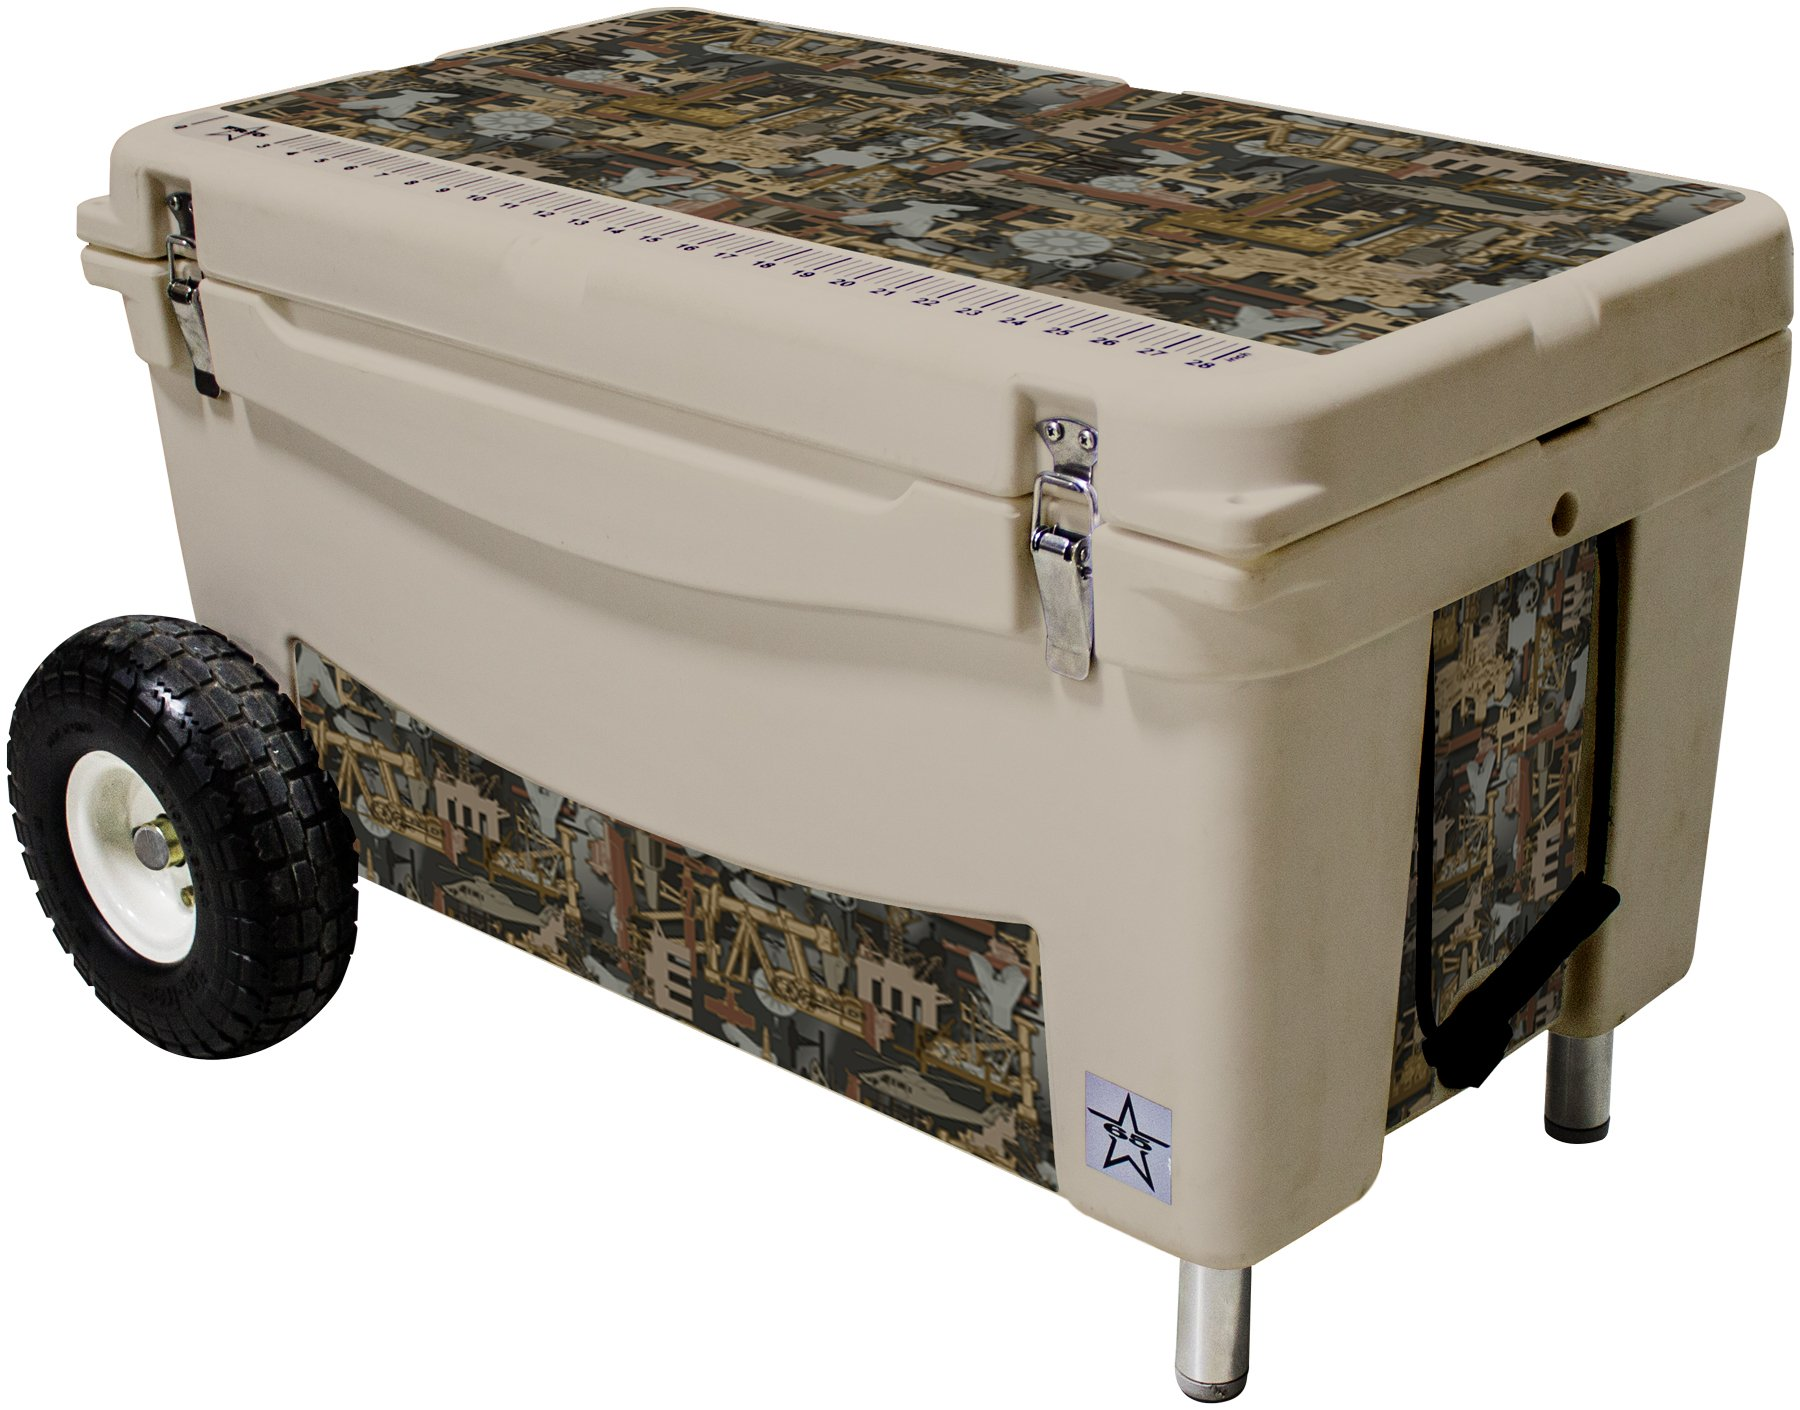 Frio Ice Chests 65Qt Extreme Wheeled Tan Hard Side with Oilfield Camo Theme Vinyl Wrap and Built-in Motion Sensitive Light Bar with Bottle Openers by Frio Ice Chests